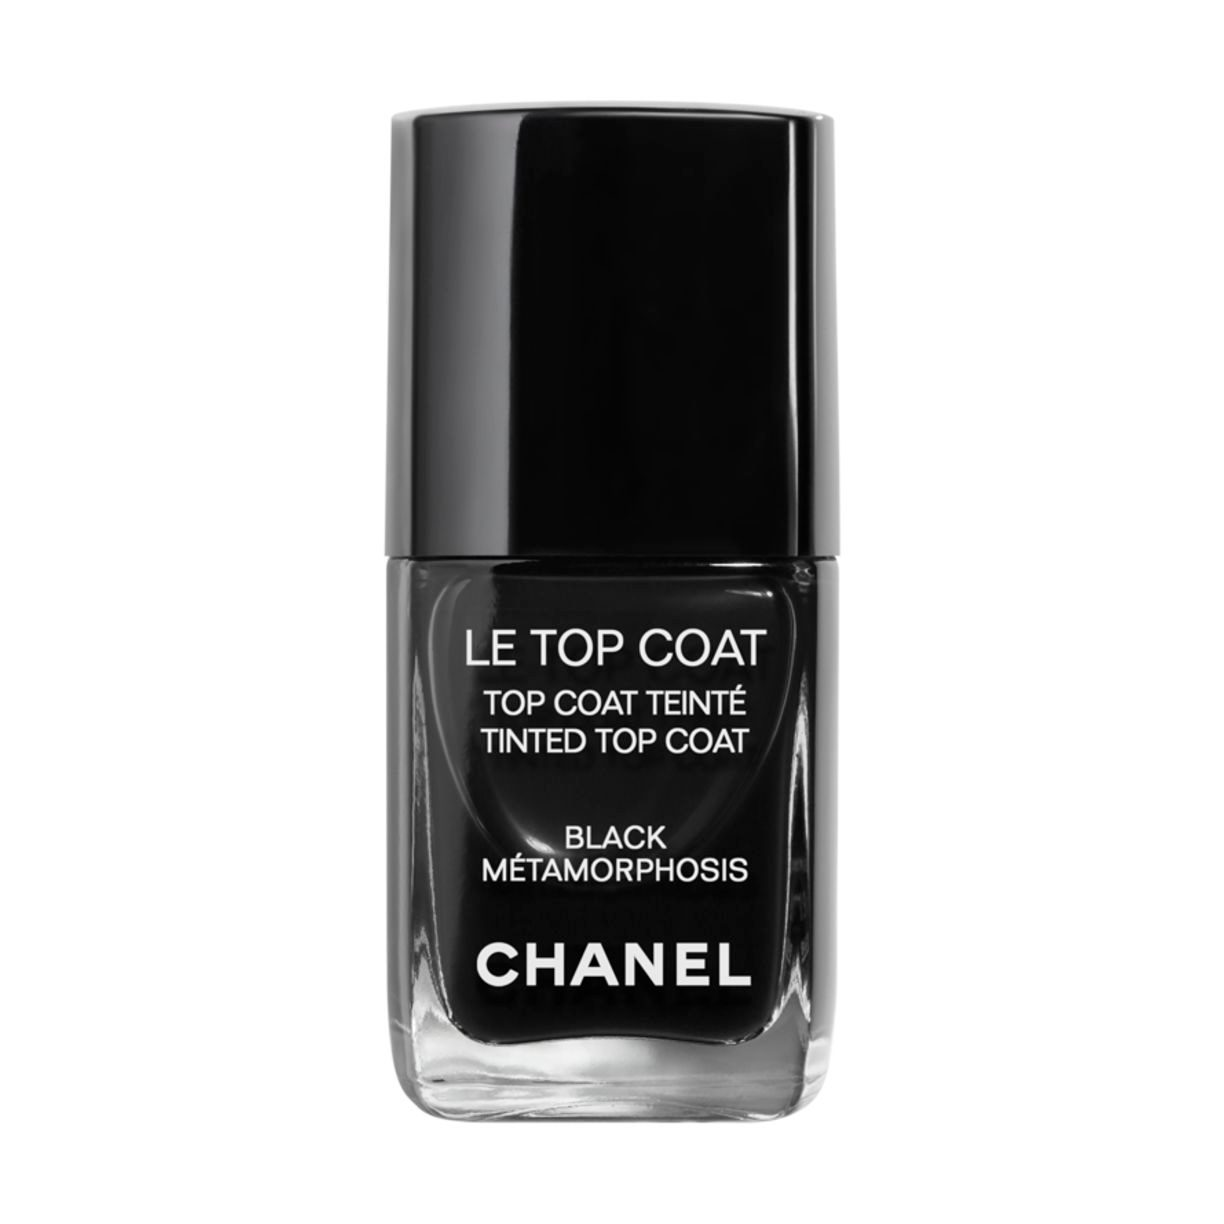 LE TOP COAT TINTED TOP COAT